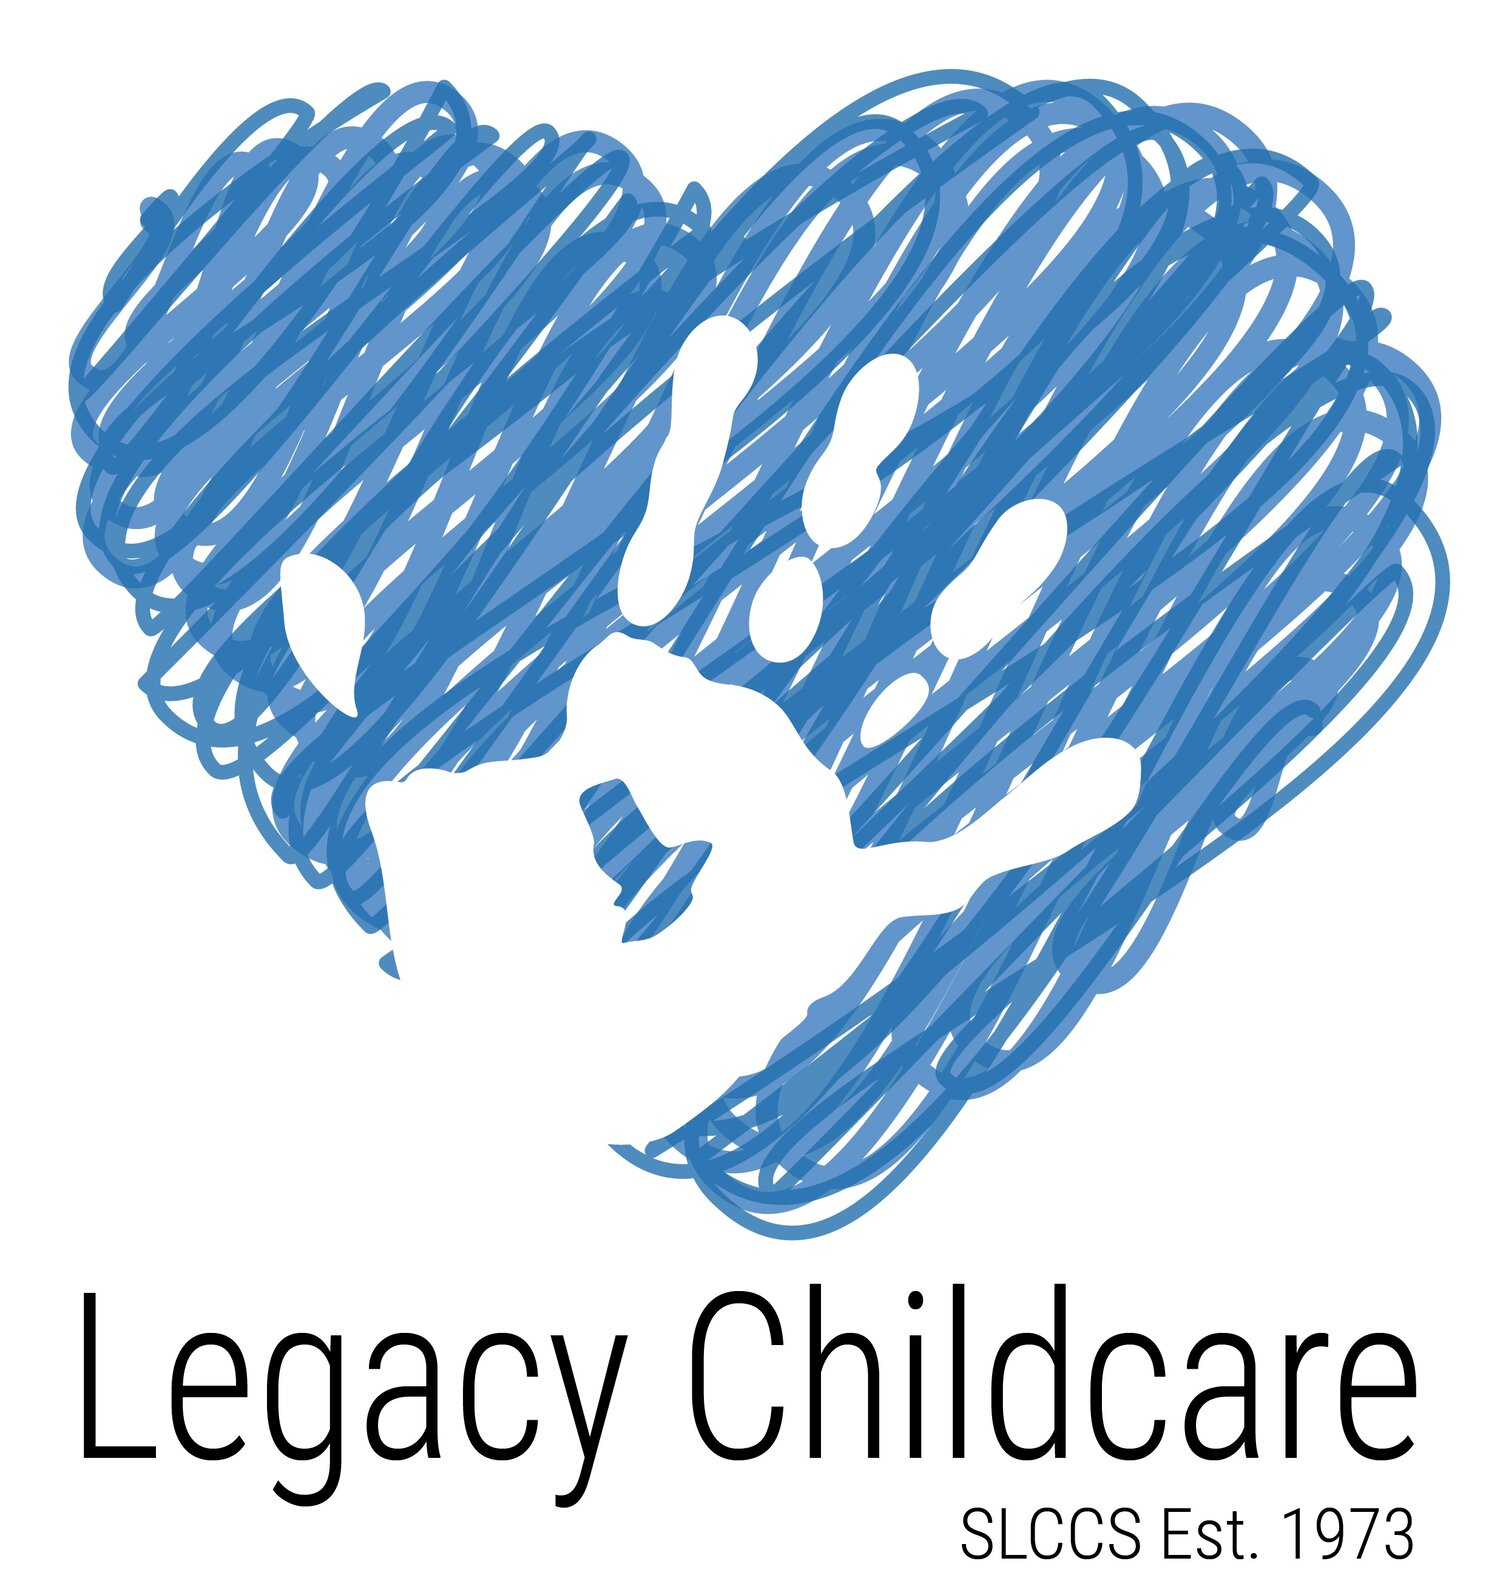 Slave Lake Child Care Society